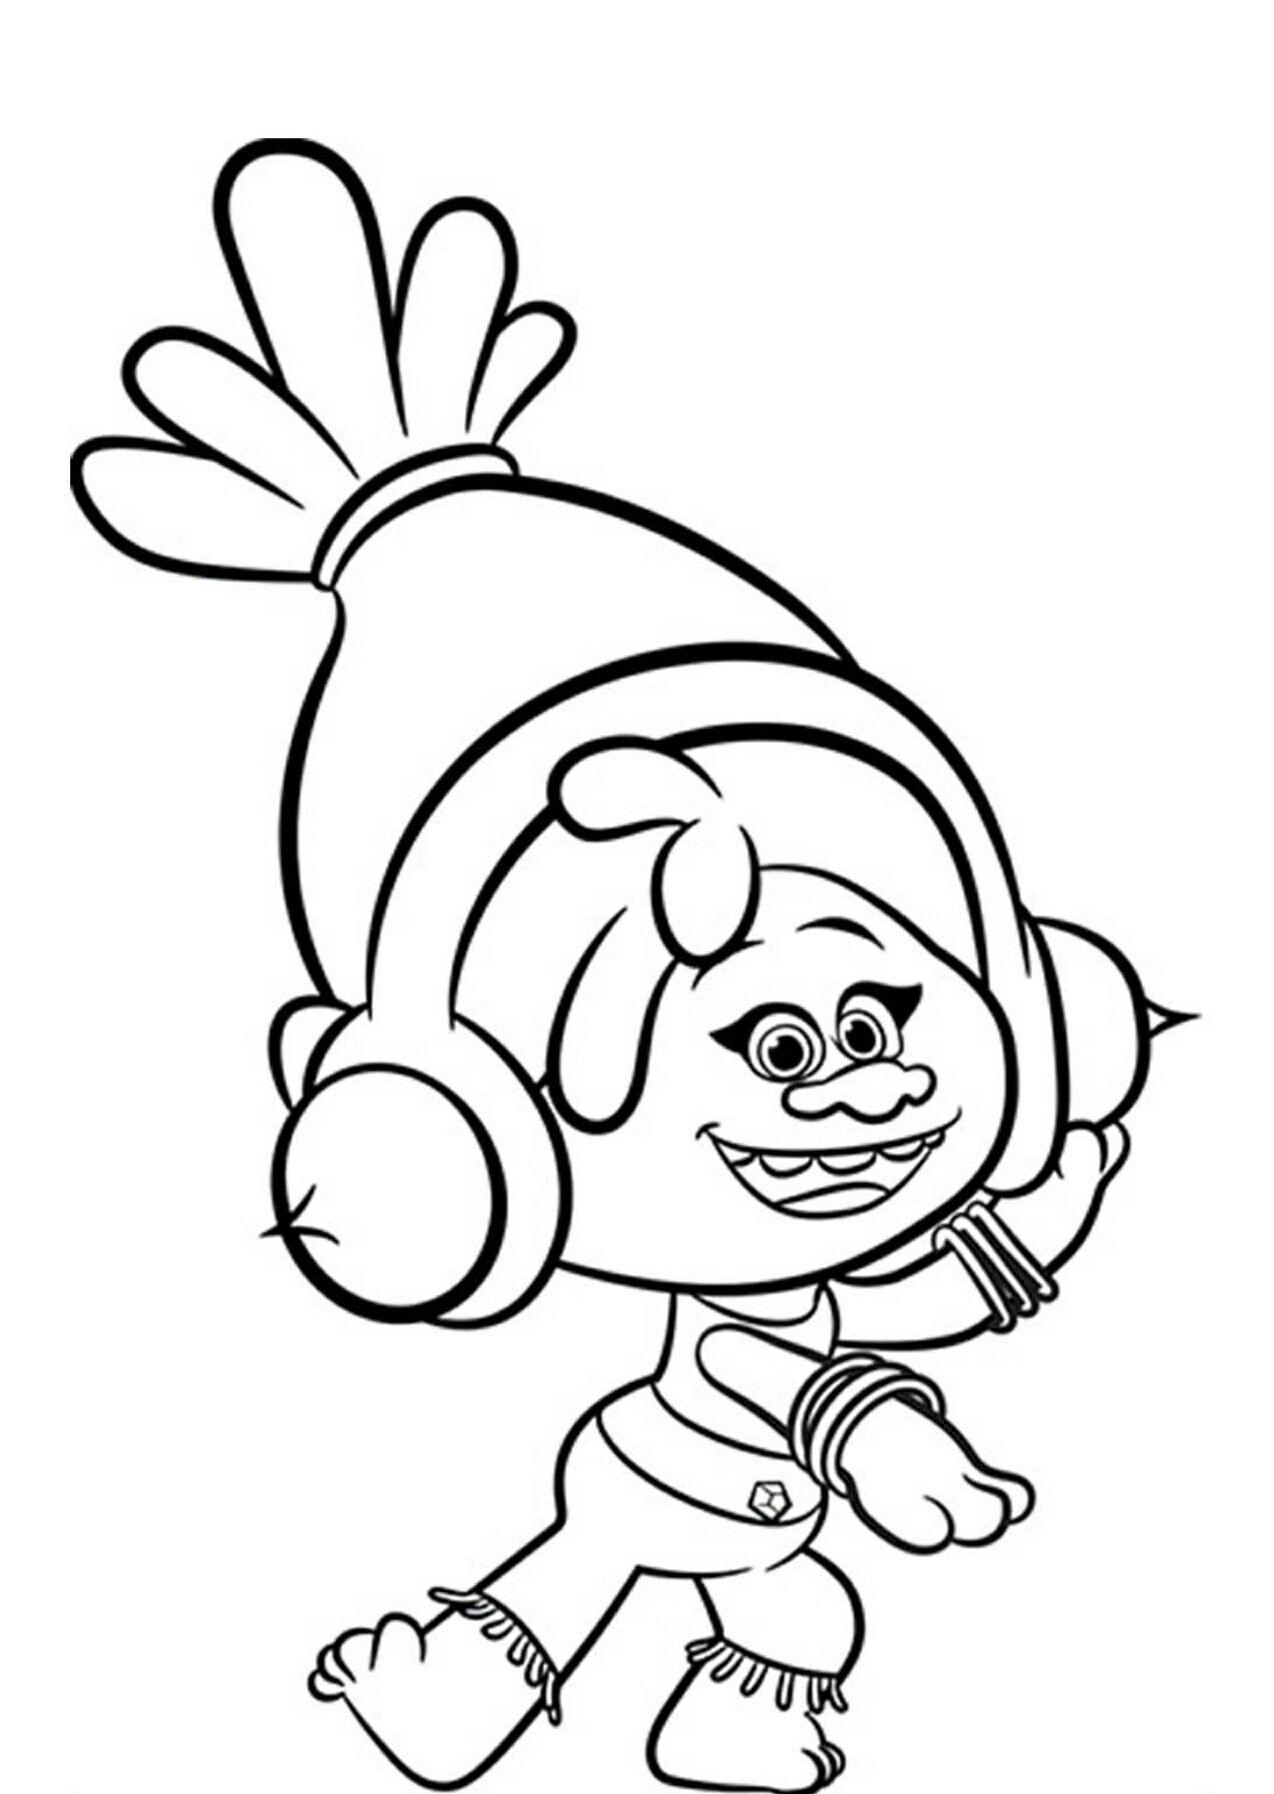 Pin By Kenna Loya On Silhouette Cartoon Coloring Pages Coloring Pages Barbie Coloring Pages